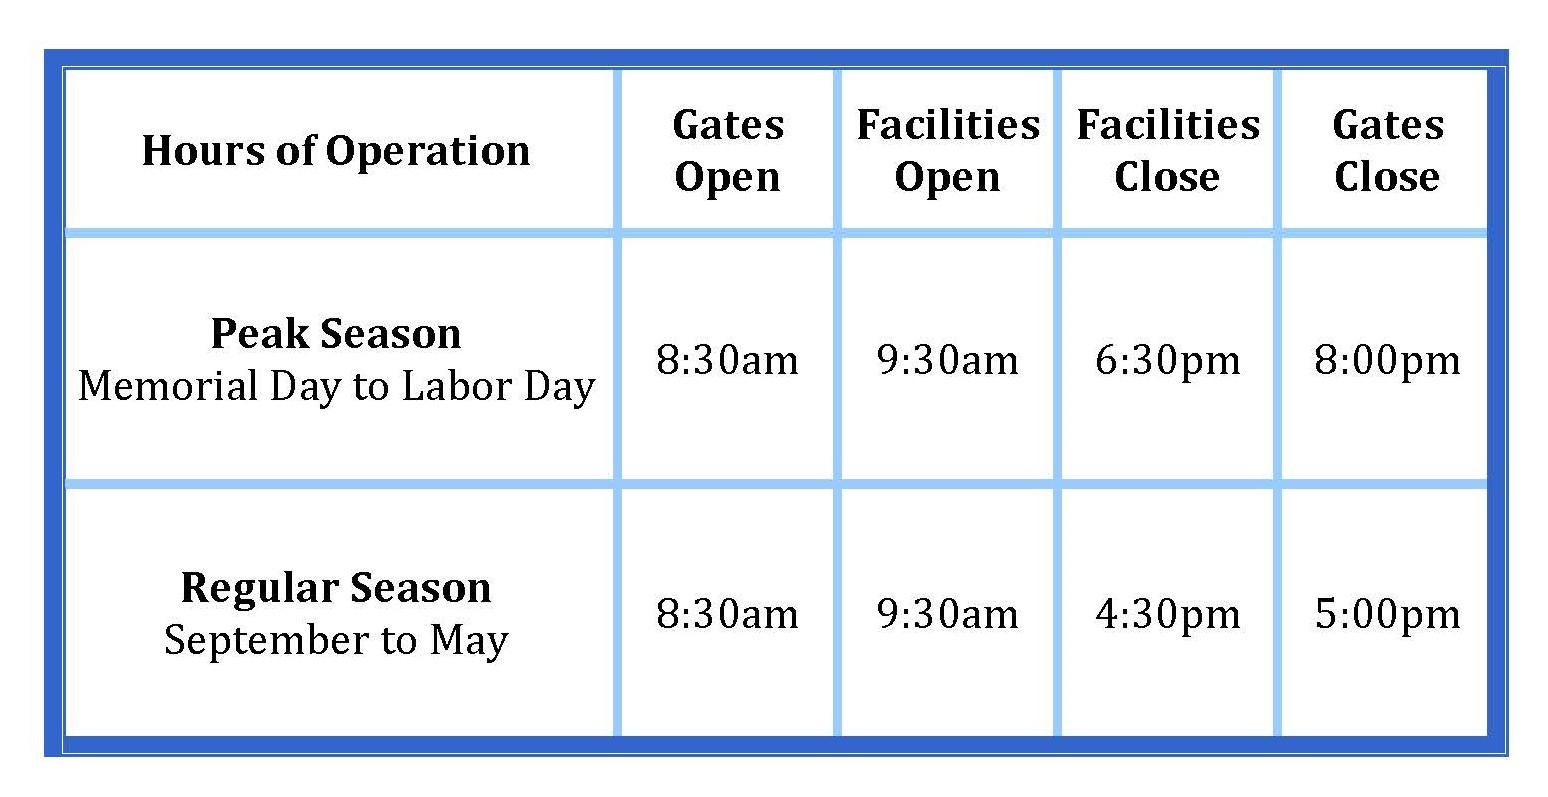 hours_of_operation